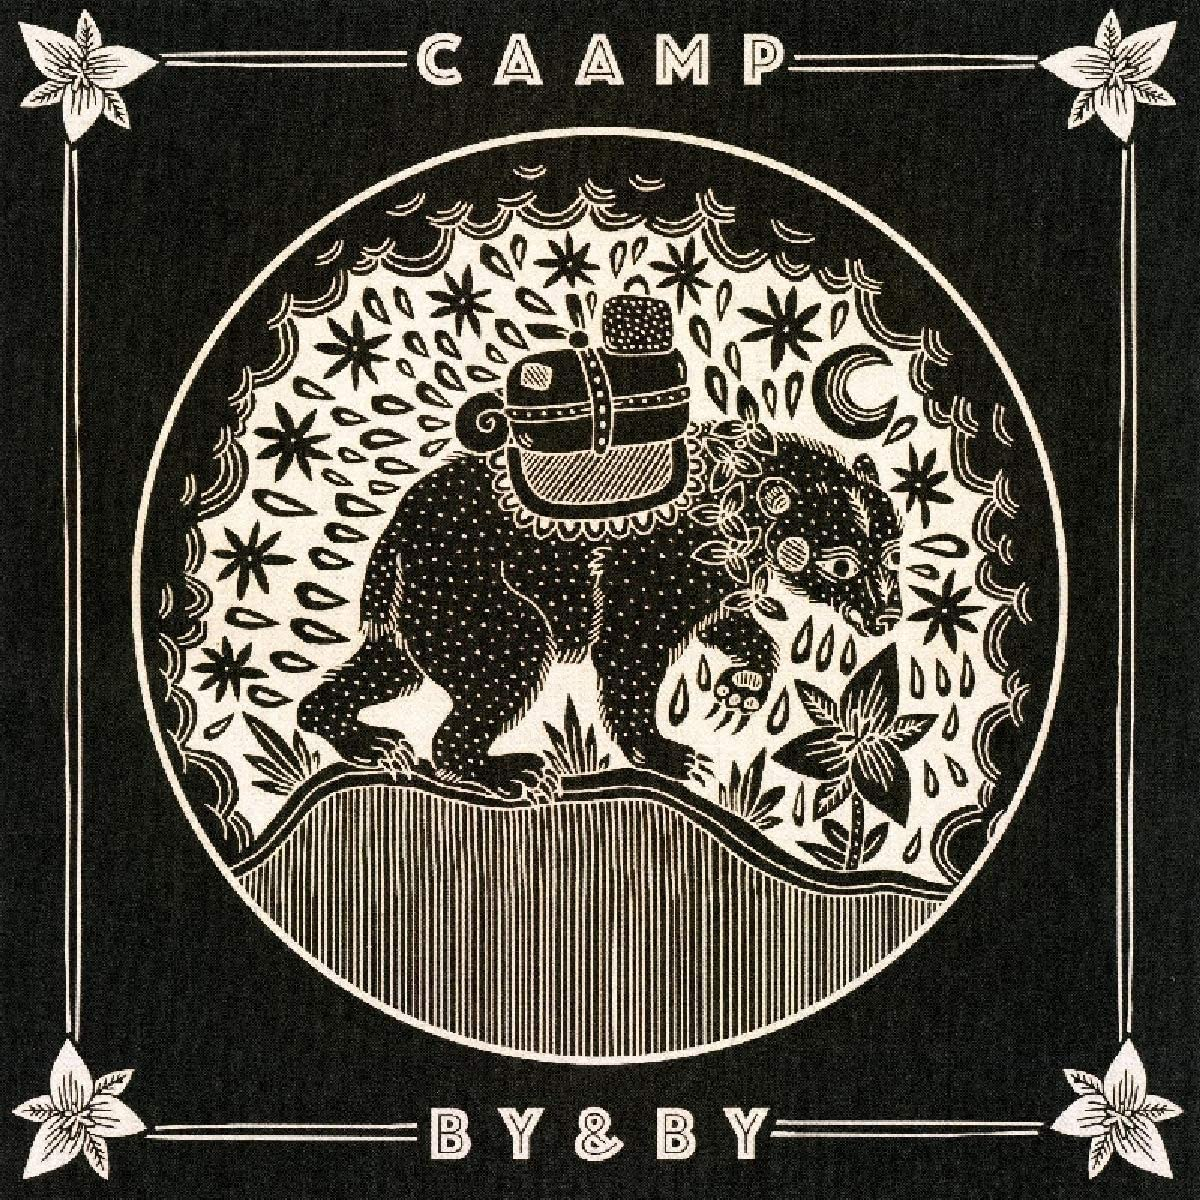 CAAMP/By & By [LP]